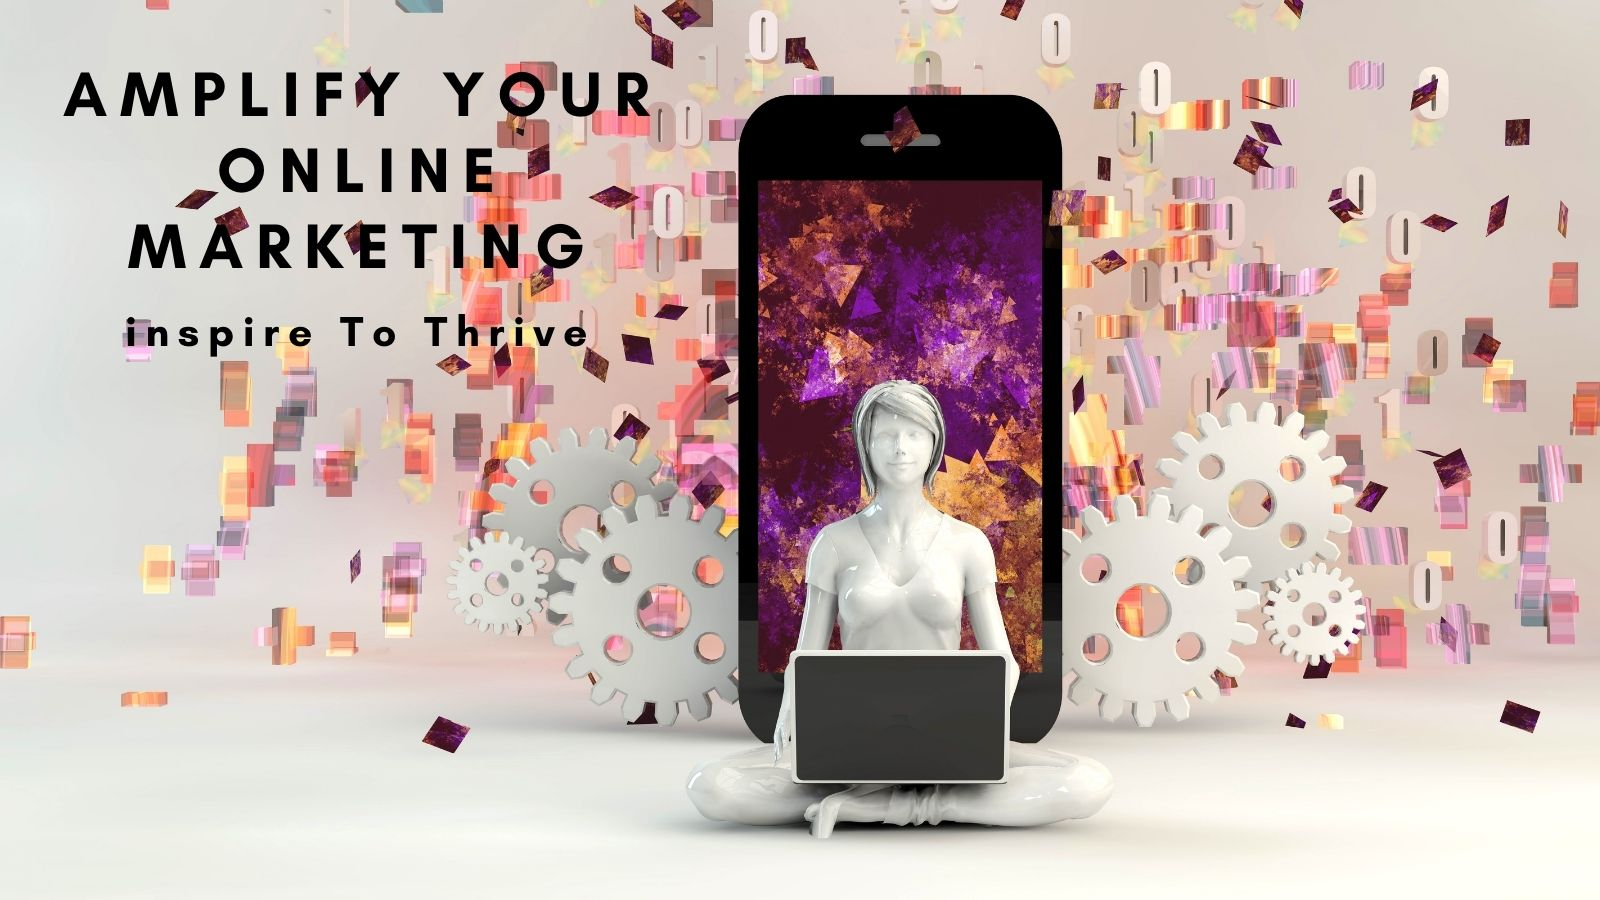 amplify your online marketing